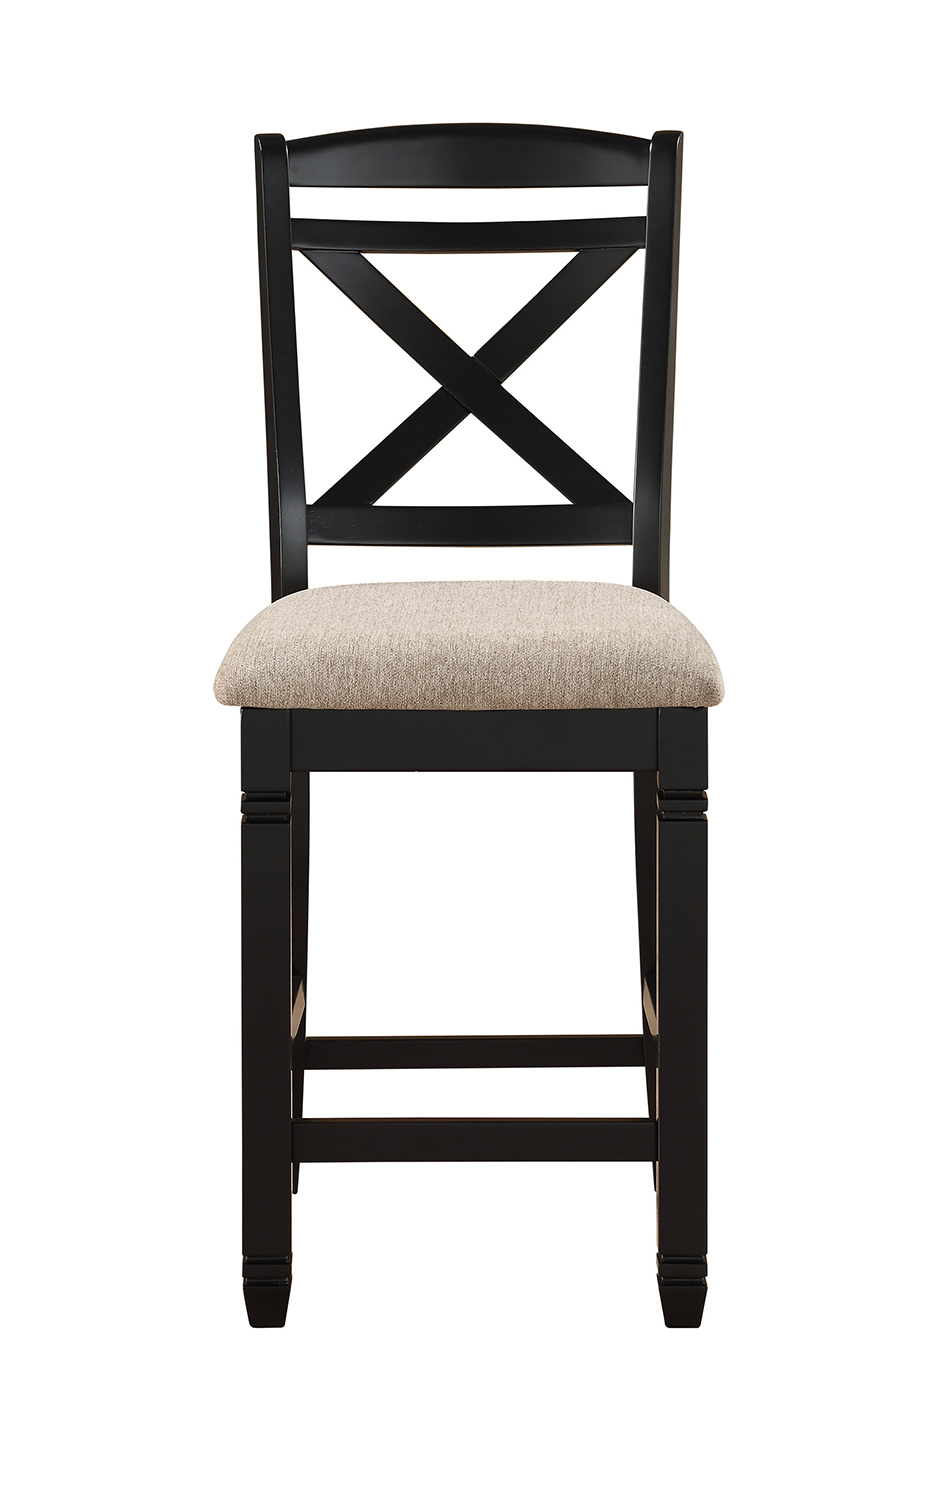 Homelegance Baywater Counter Height Chair - Black -Natural